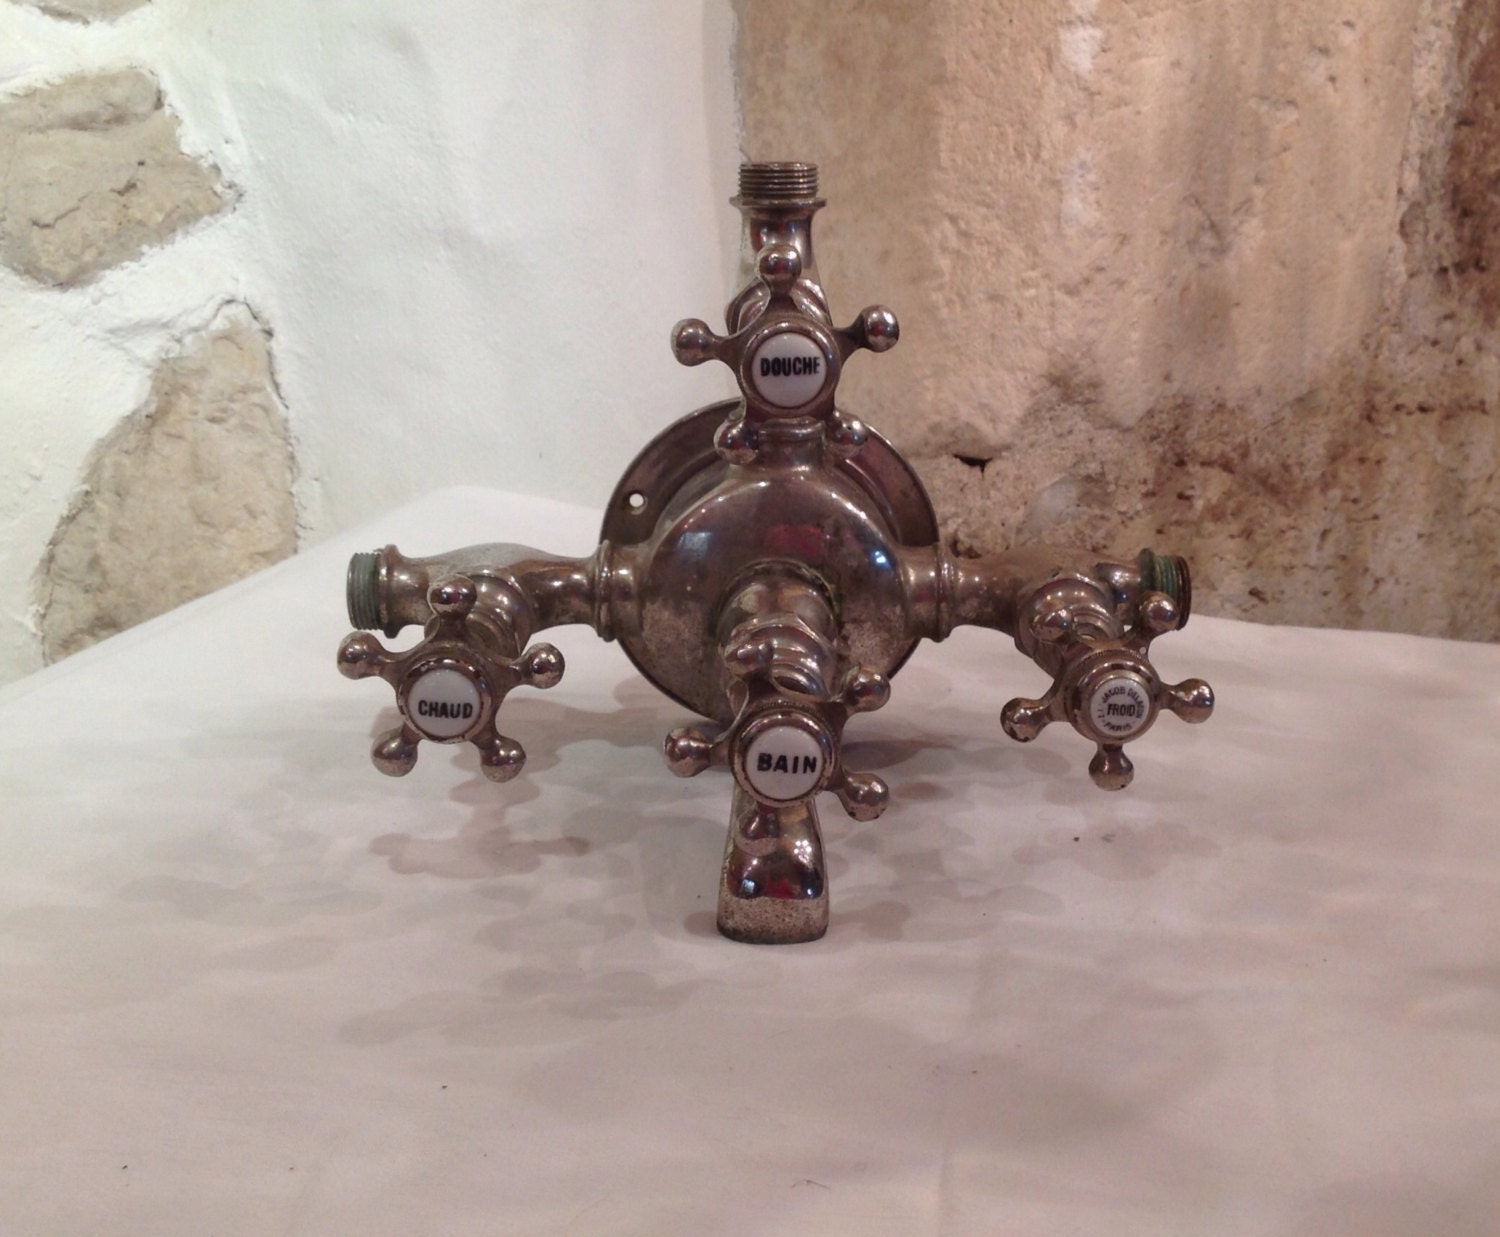 Stunning antique French Jacob Delafon bath shower mixer faucet ...